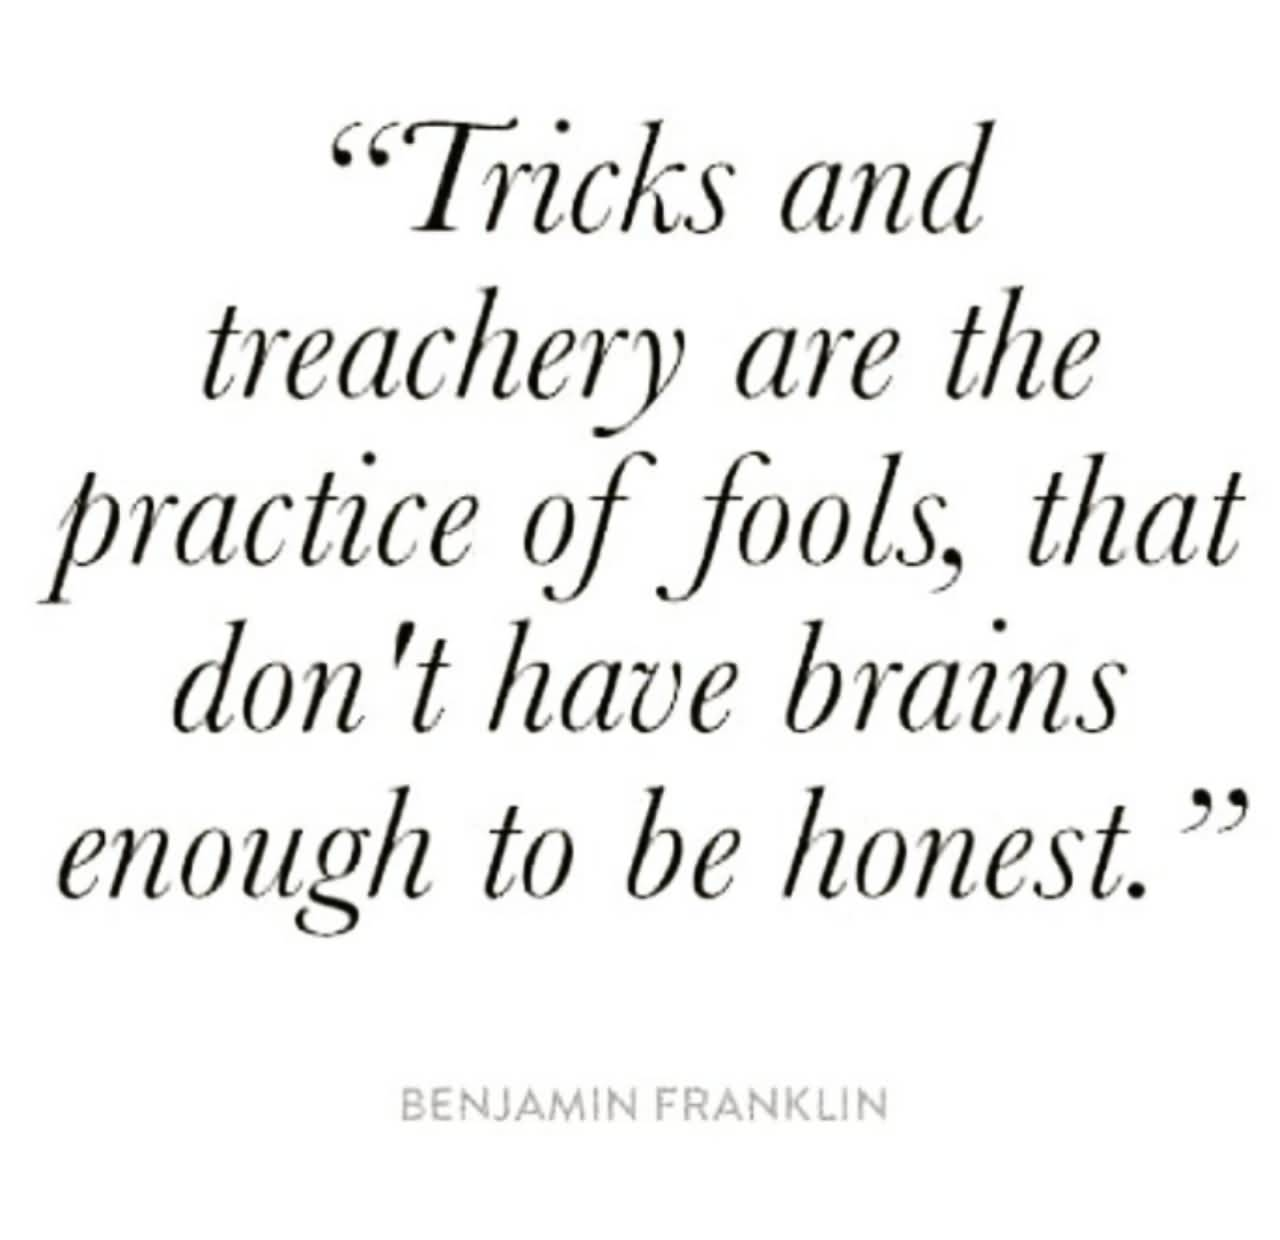 70 honesty quotes sayings about being honest tricks and treachery are the practice of fools that don t have brains enough